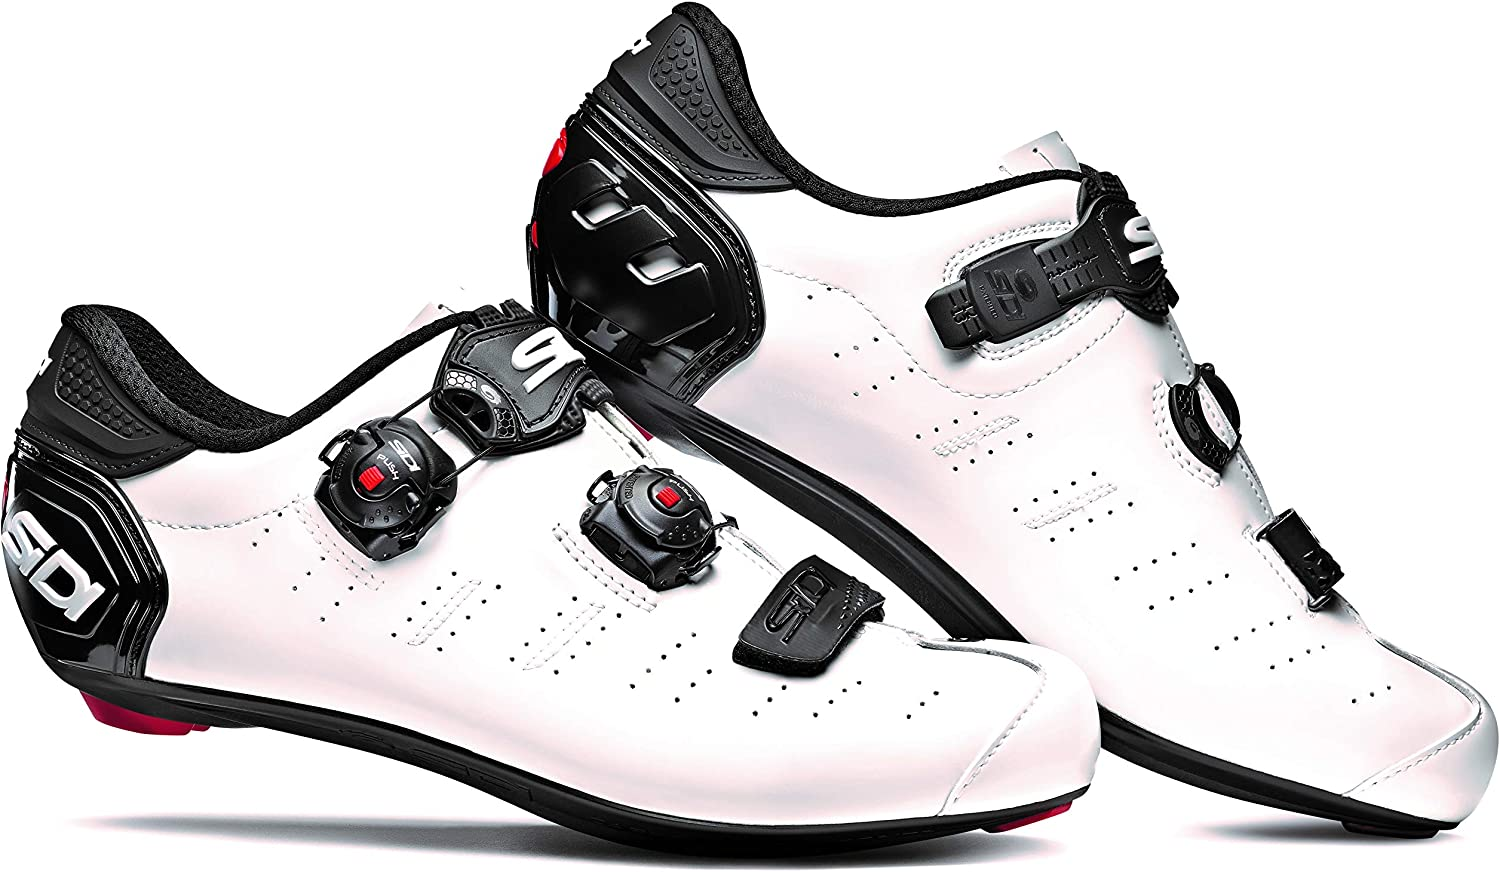 Sidi - Ergo 5 Mega Men's Cycling Shoes, Mens